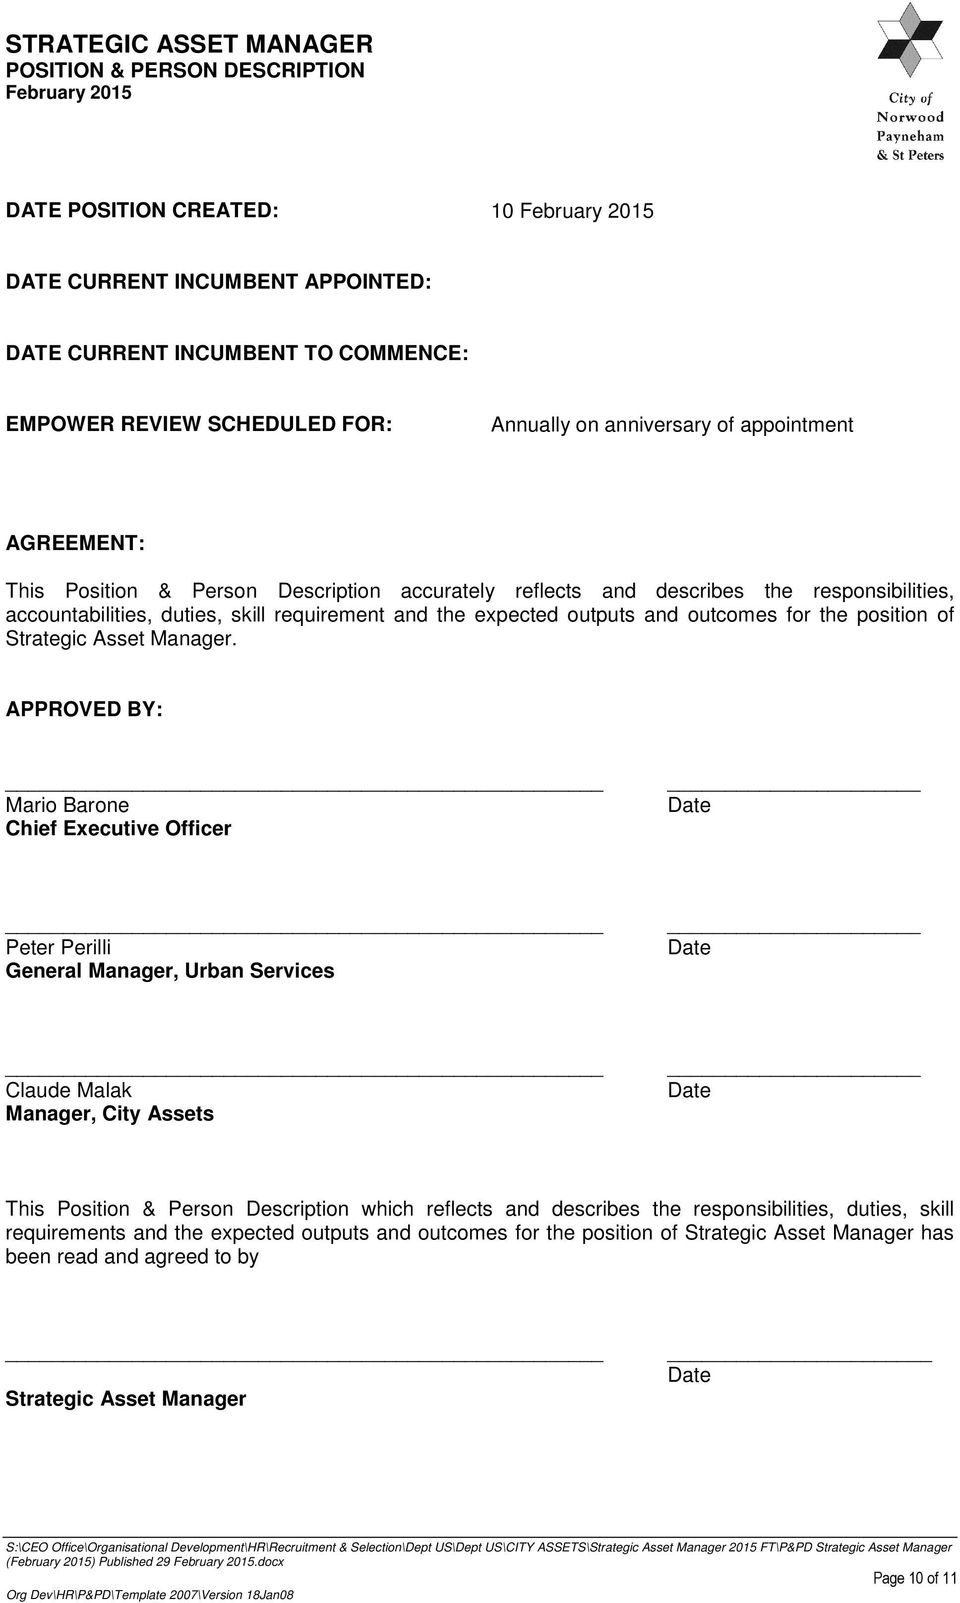 APPROVED BY: Mario Barone Chief Executive Officer Date Peter Perilli General Manager, Urban Services Date Claude Malak Manager, City Assets Date This Position & Person Description which reflects and